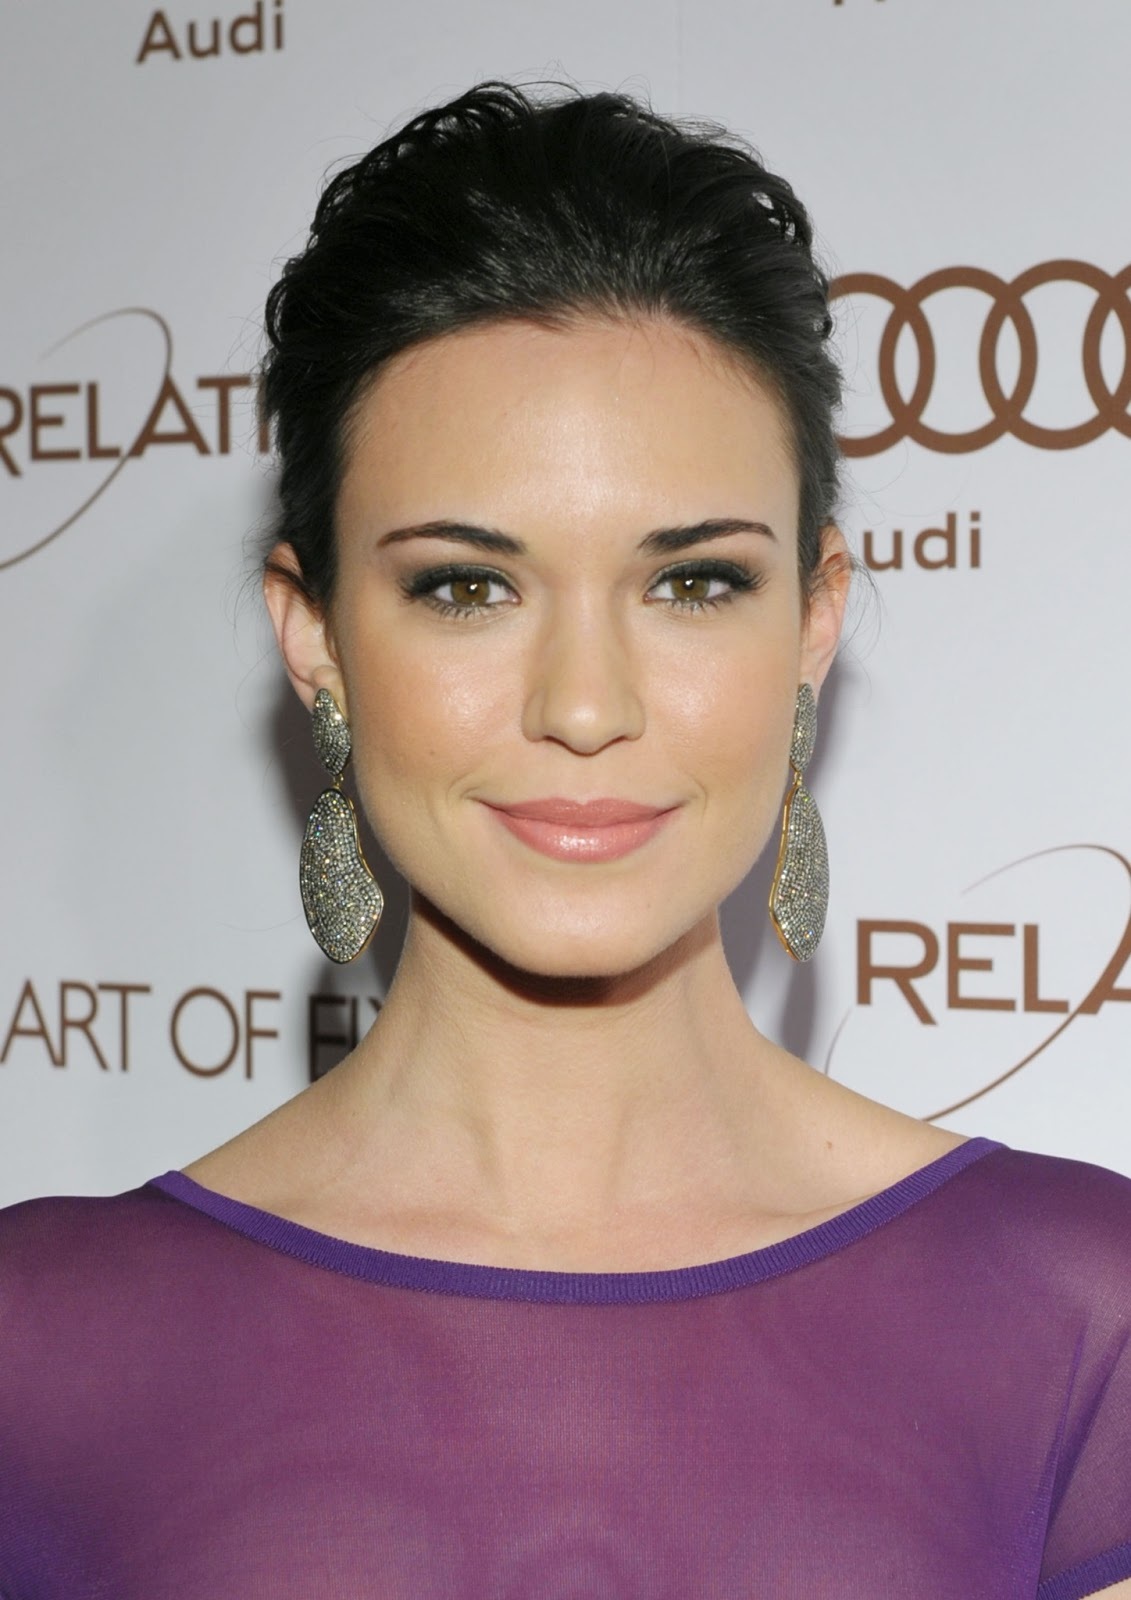 Odette Annable Photos: Best Picture Gallery of Odette